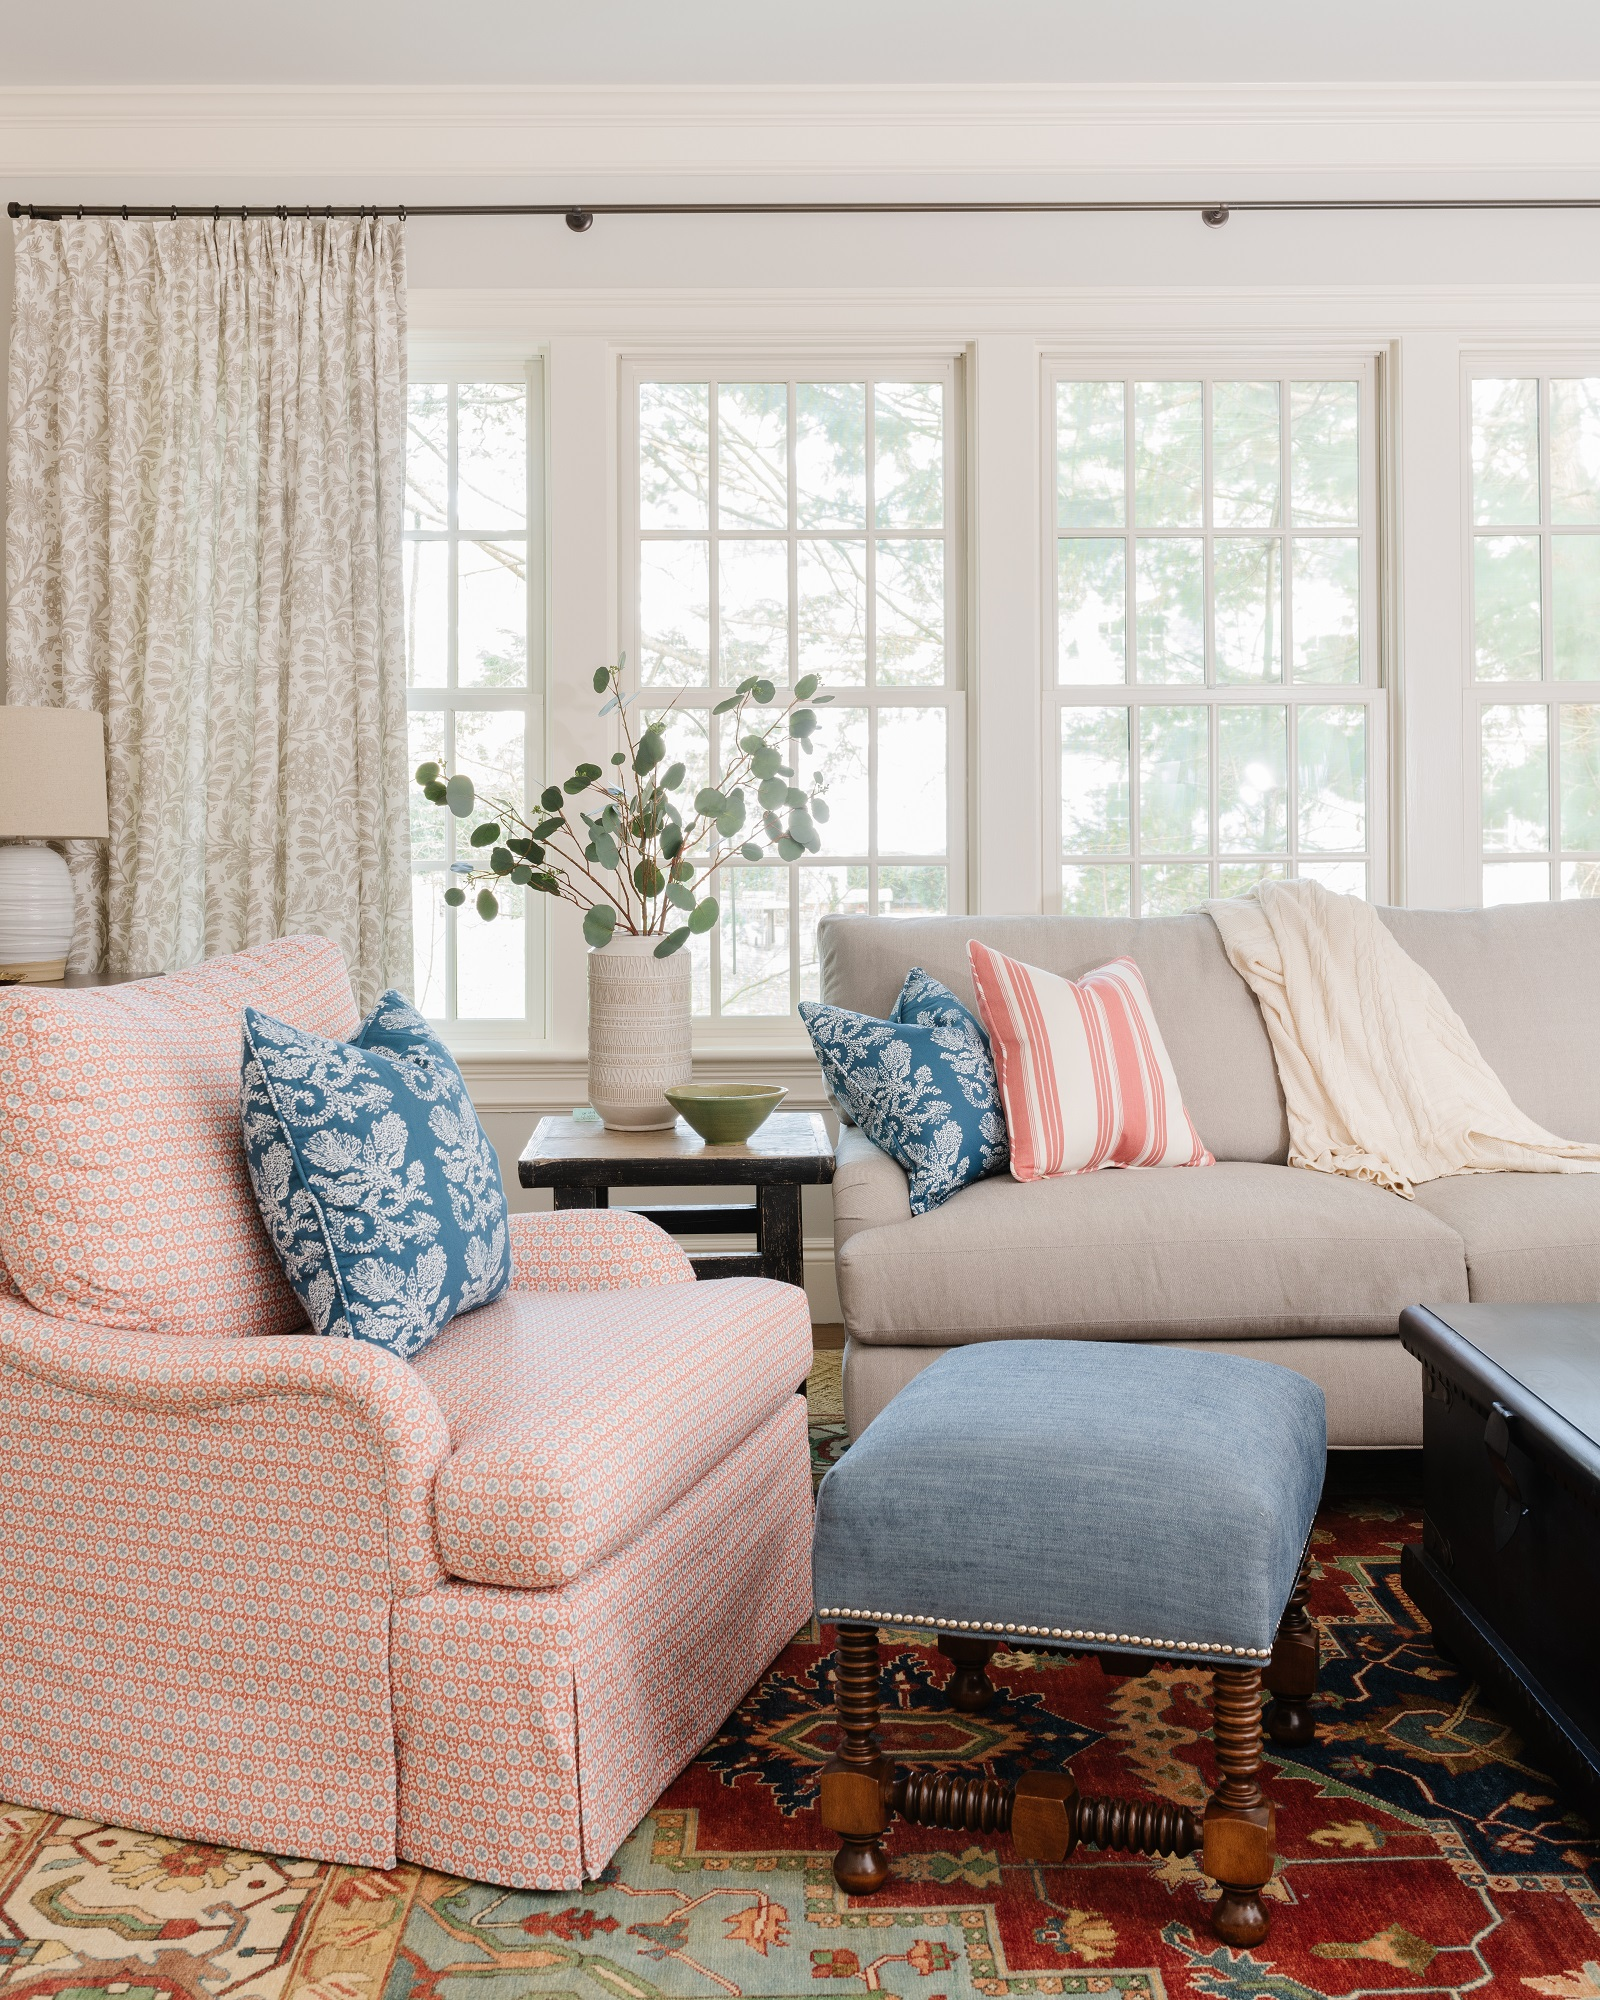 Family room design with cozy sectional, armchair and ottoman